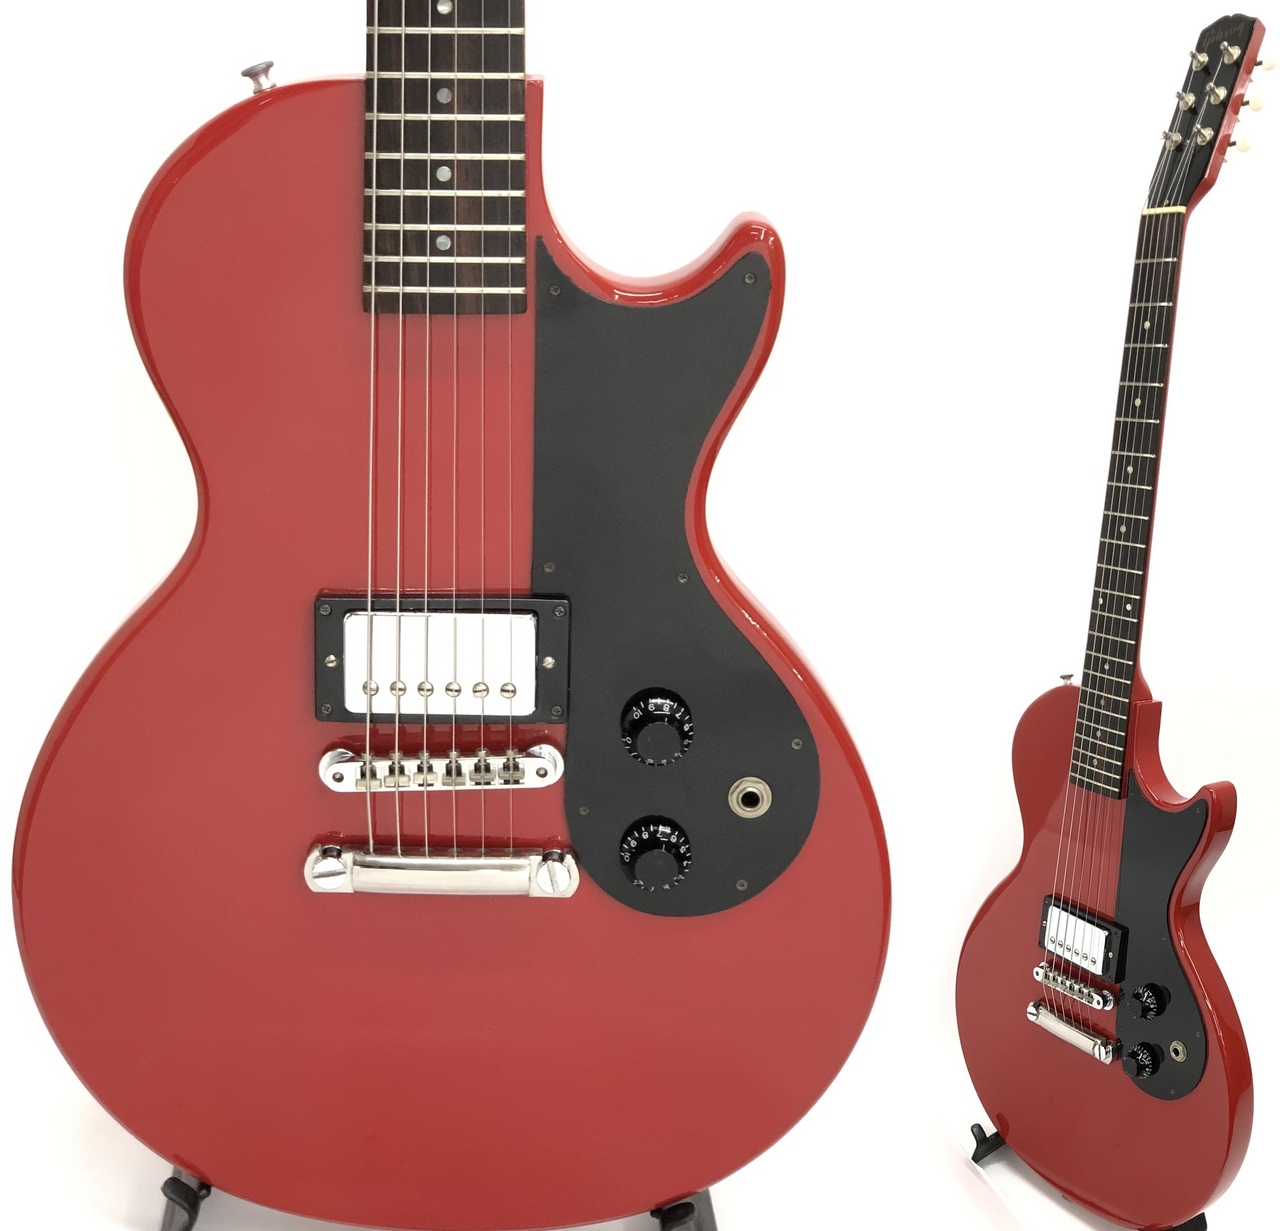 Gibson Melody Maker Ferrari Red 1990年製